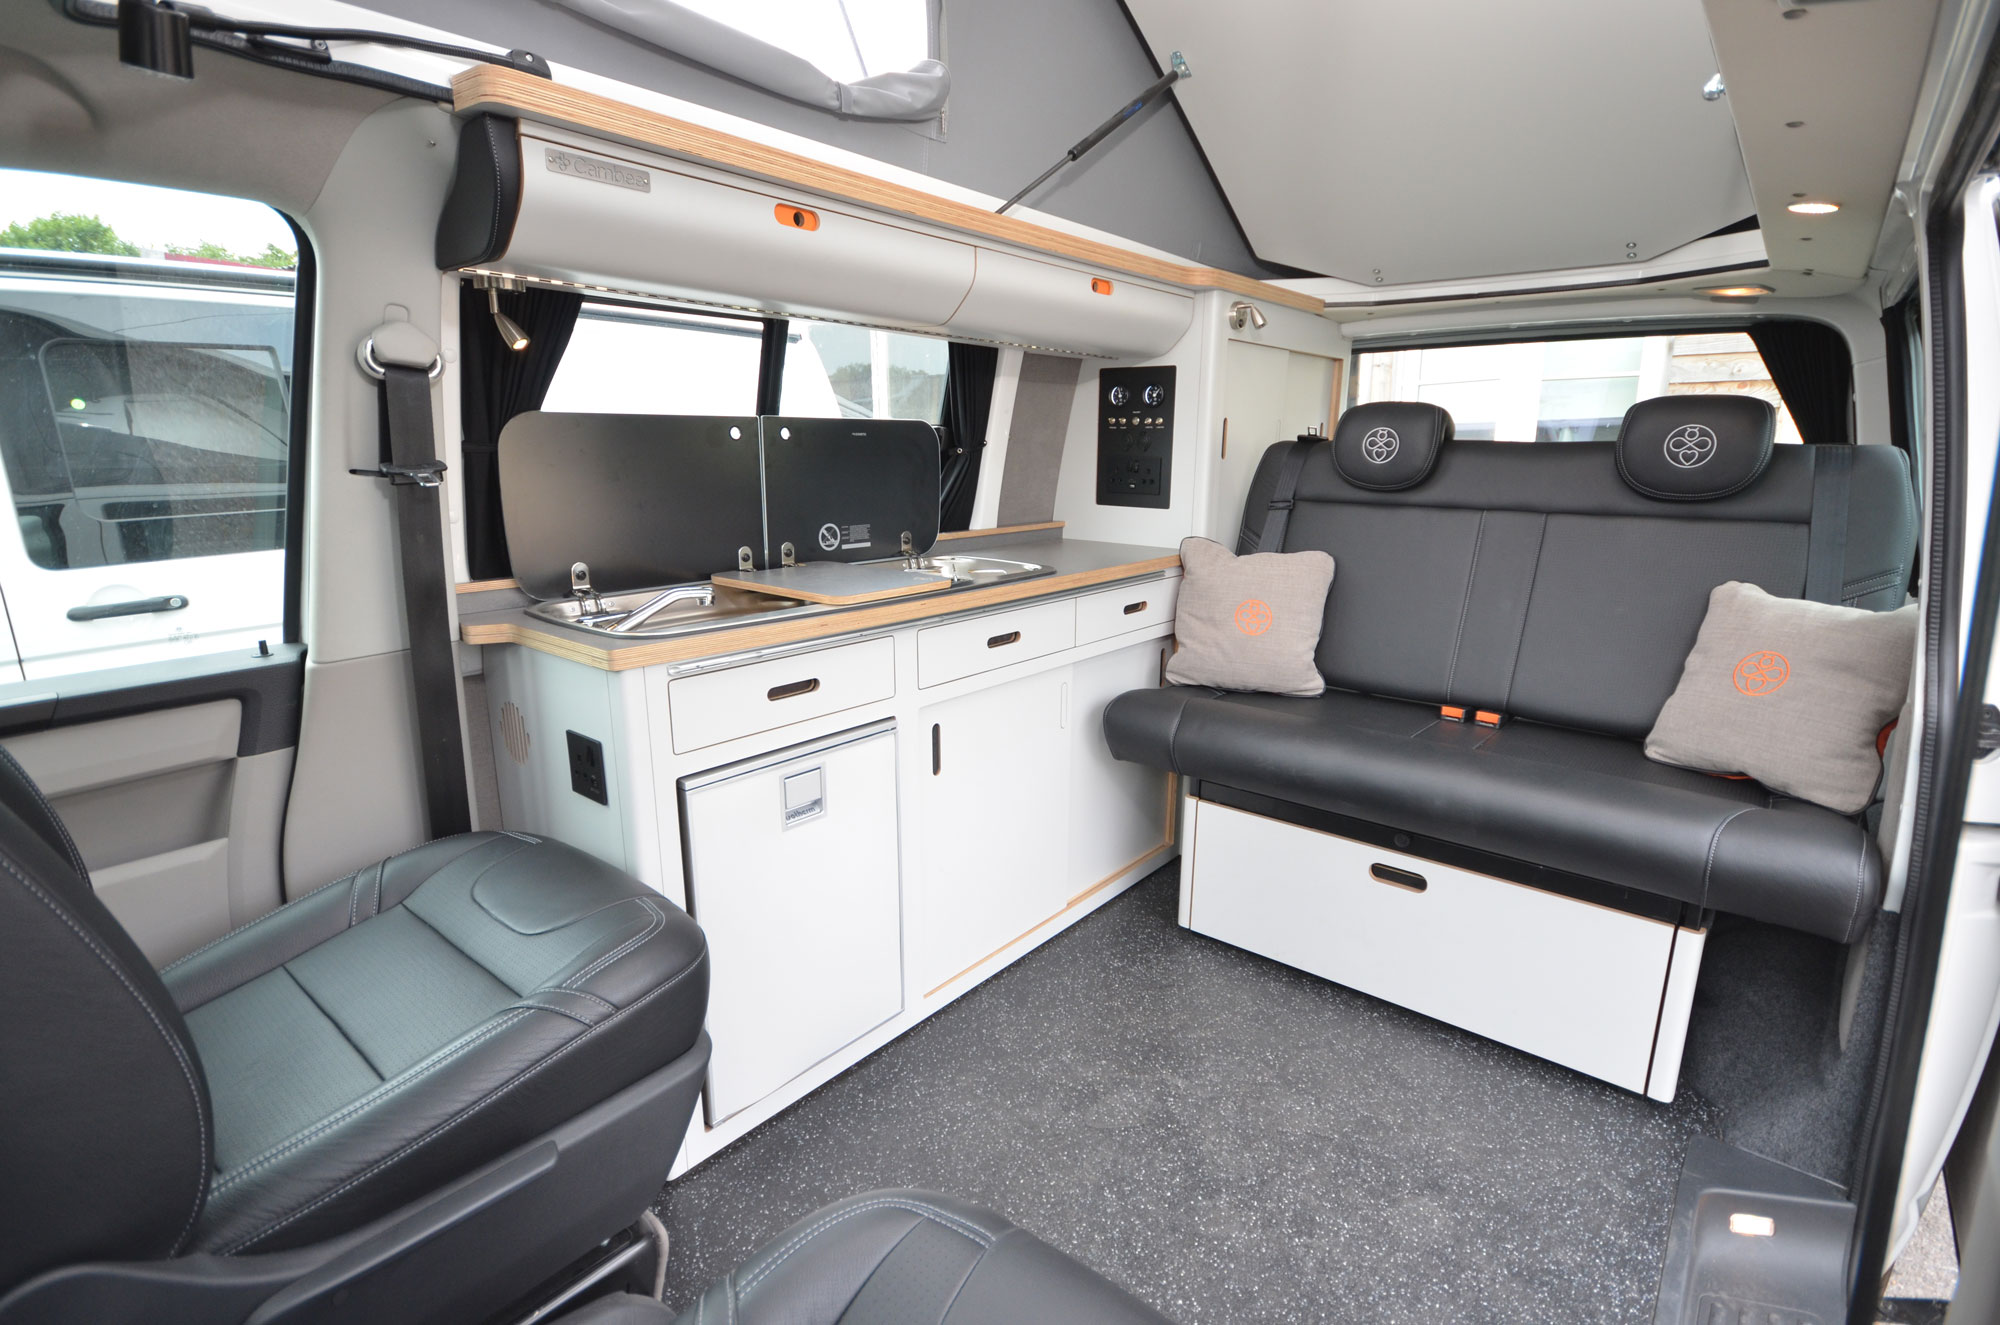 cool modern smart campervan eco plywood conversion in black leather and white units with rock and roll bed, built in fridge, overhead lockers, sink, gas hob, clever storage, embroidered cushions